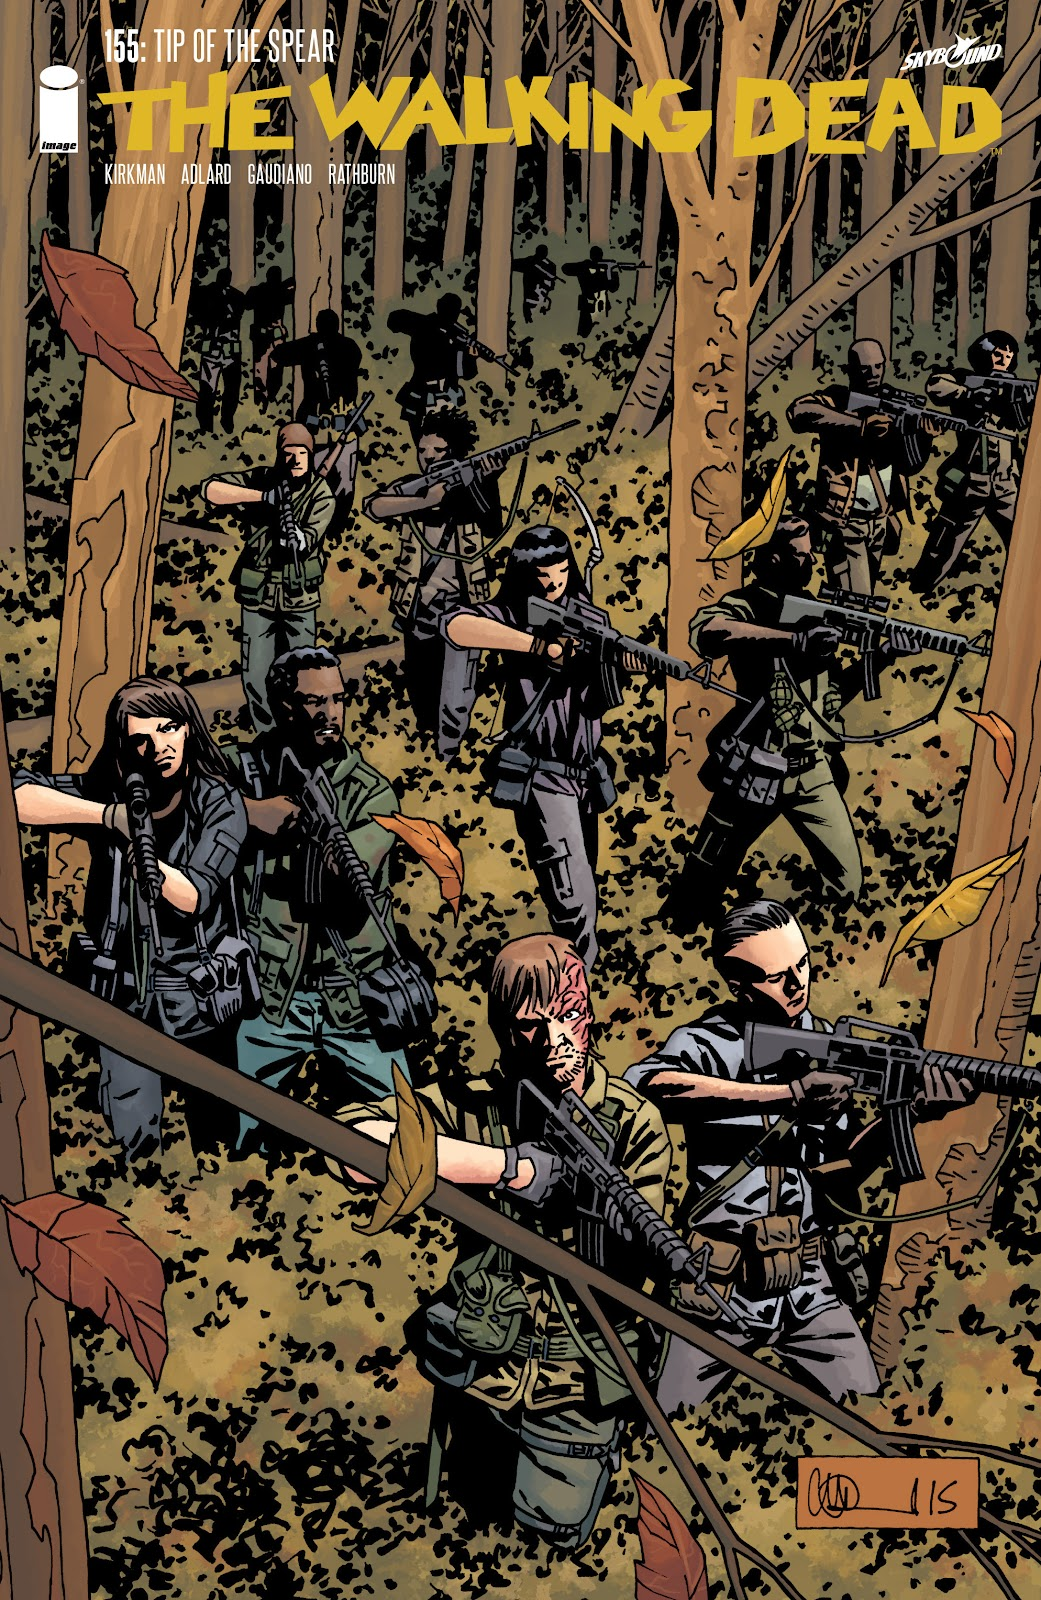 The Walking Dead Issue #155 Page 1